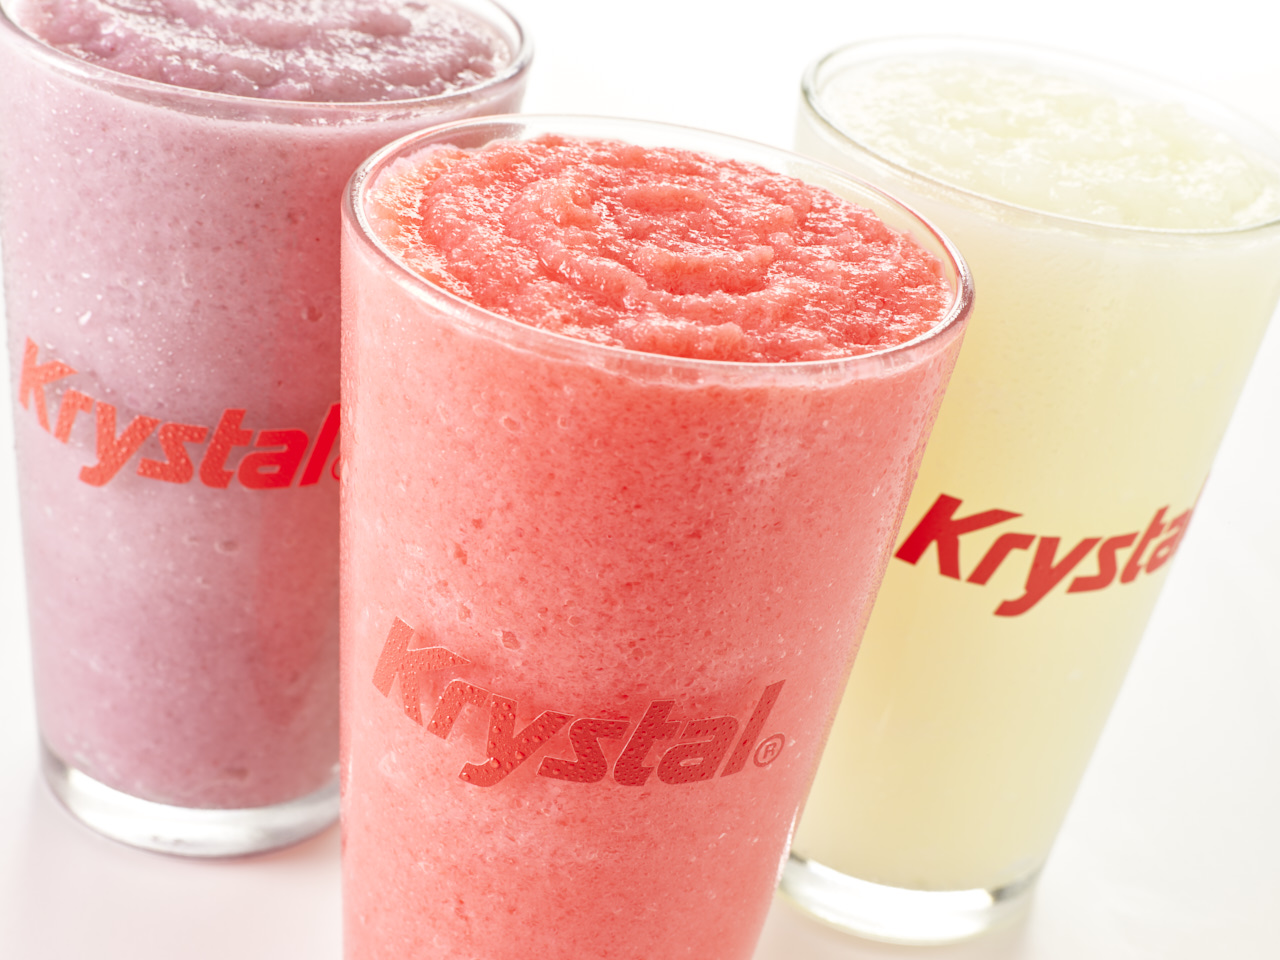 Raspberry, Strawberry, and Citrus slushies in clear glass Krystal cups.